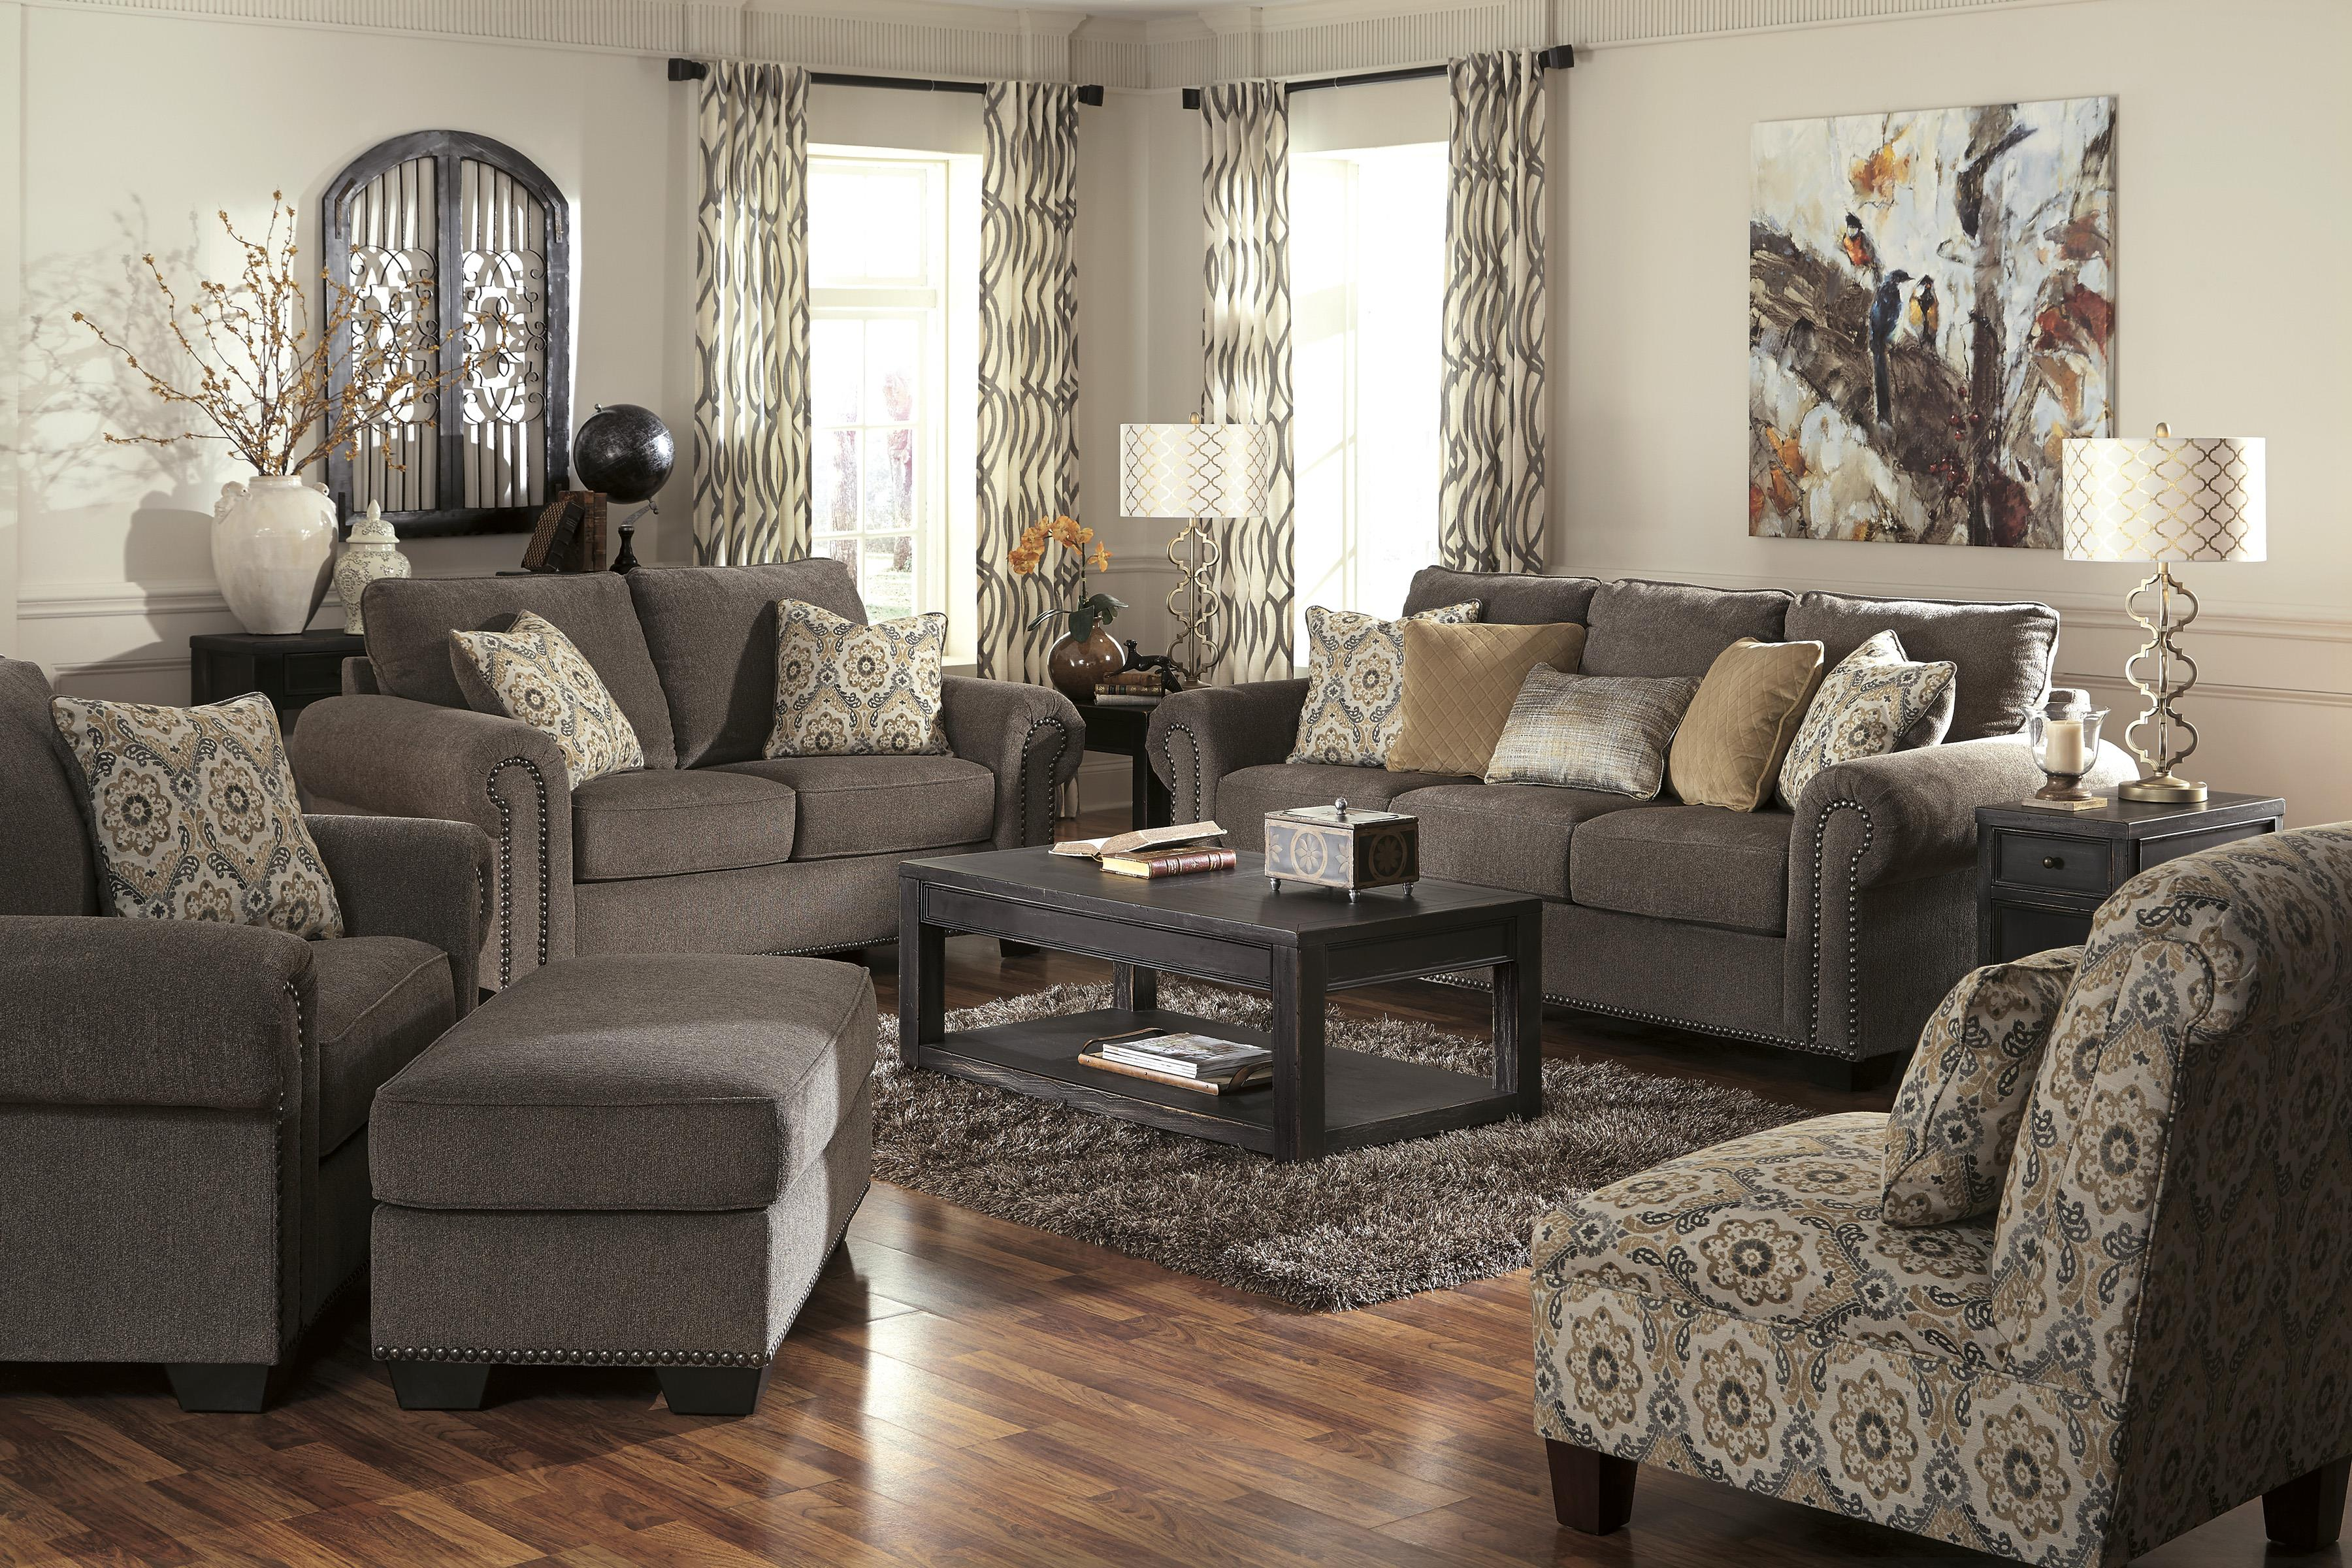 Benchcraft Emelen Transitional Sofa With Nailhead Trim Coil Seating Michael S Furniture Warehouse